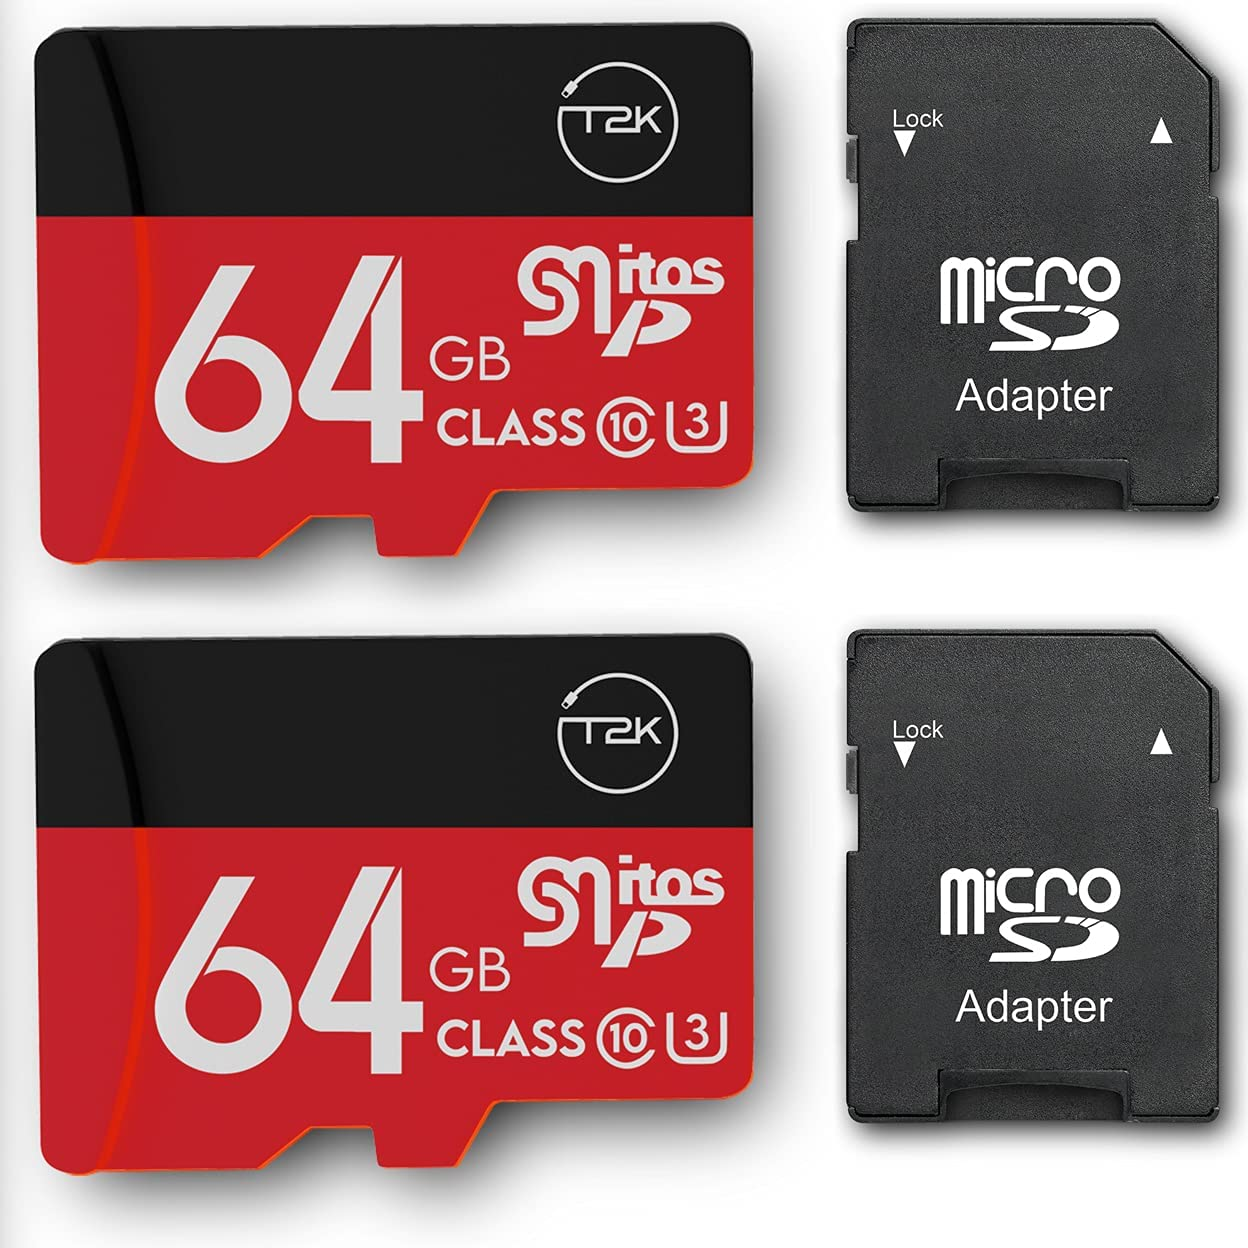 64GB Class 10 MicroSDXC Flash Memory Card with Adapter for Mobile Device Storage Phone, Tablet, Drone & Full HD Video Recording - 90MB/s UHS-I, C10, U1 (2 Pack)